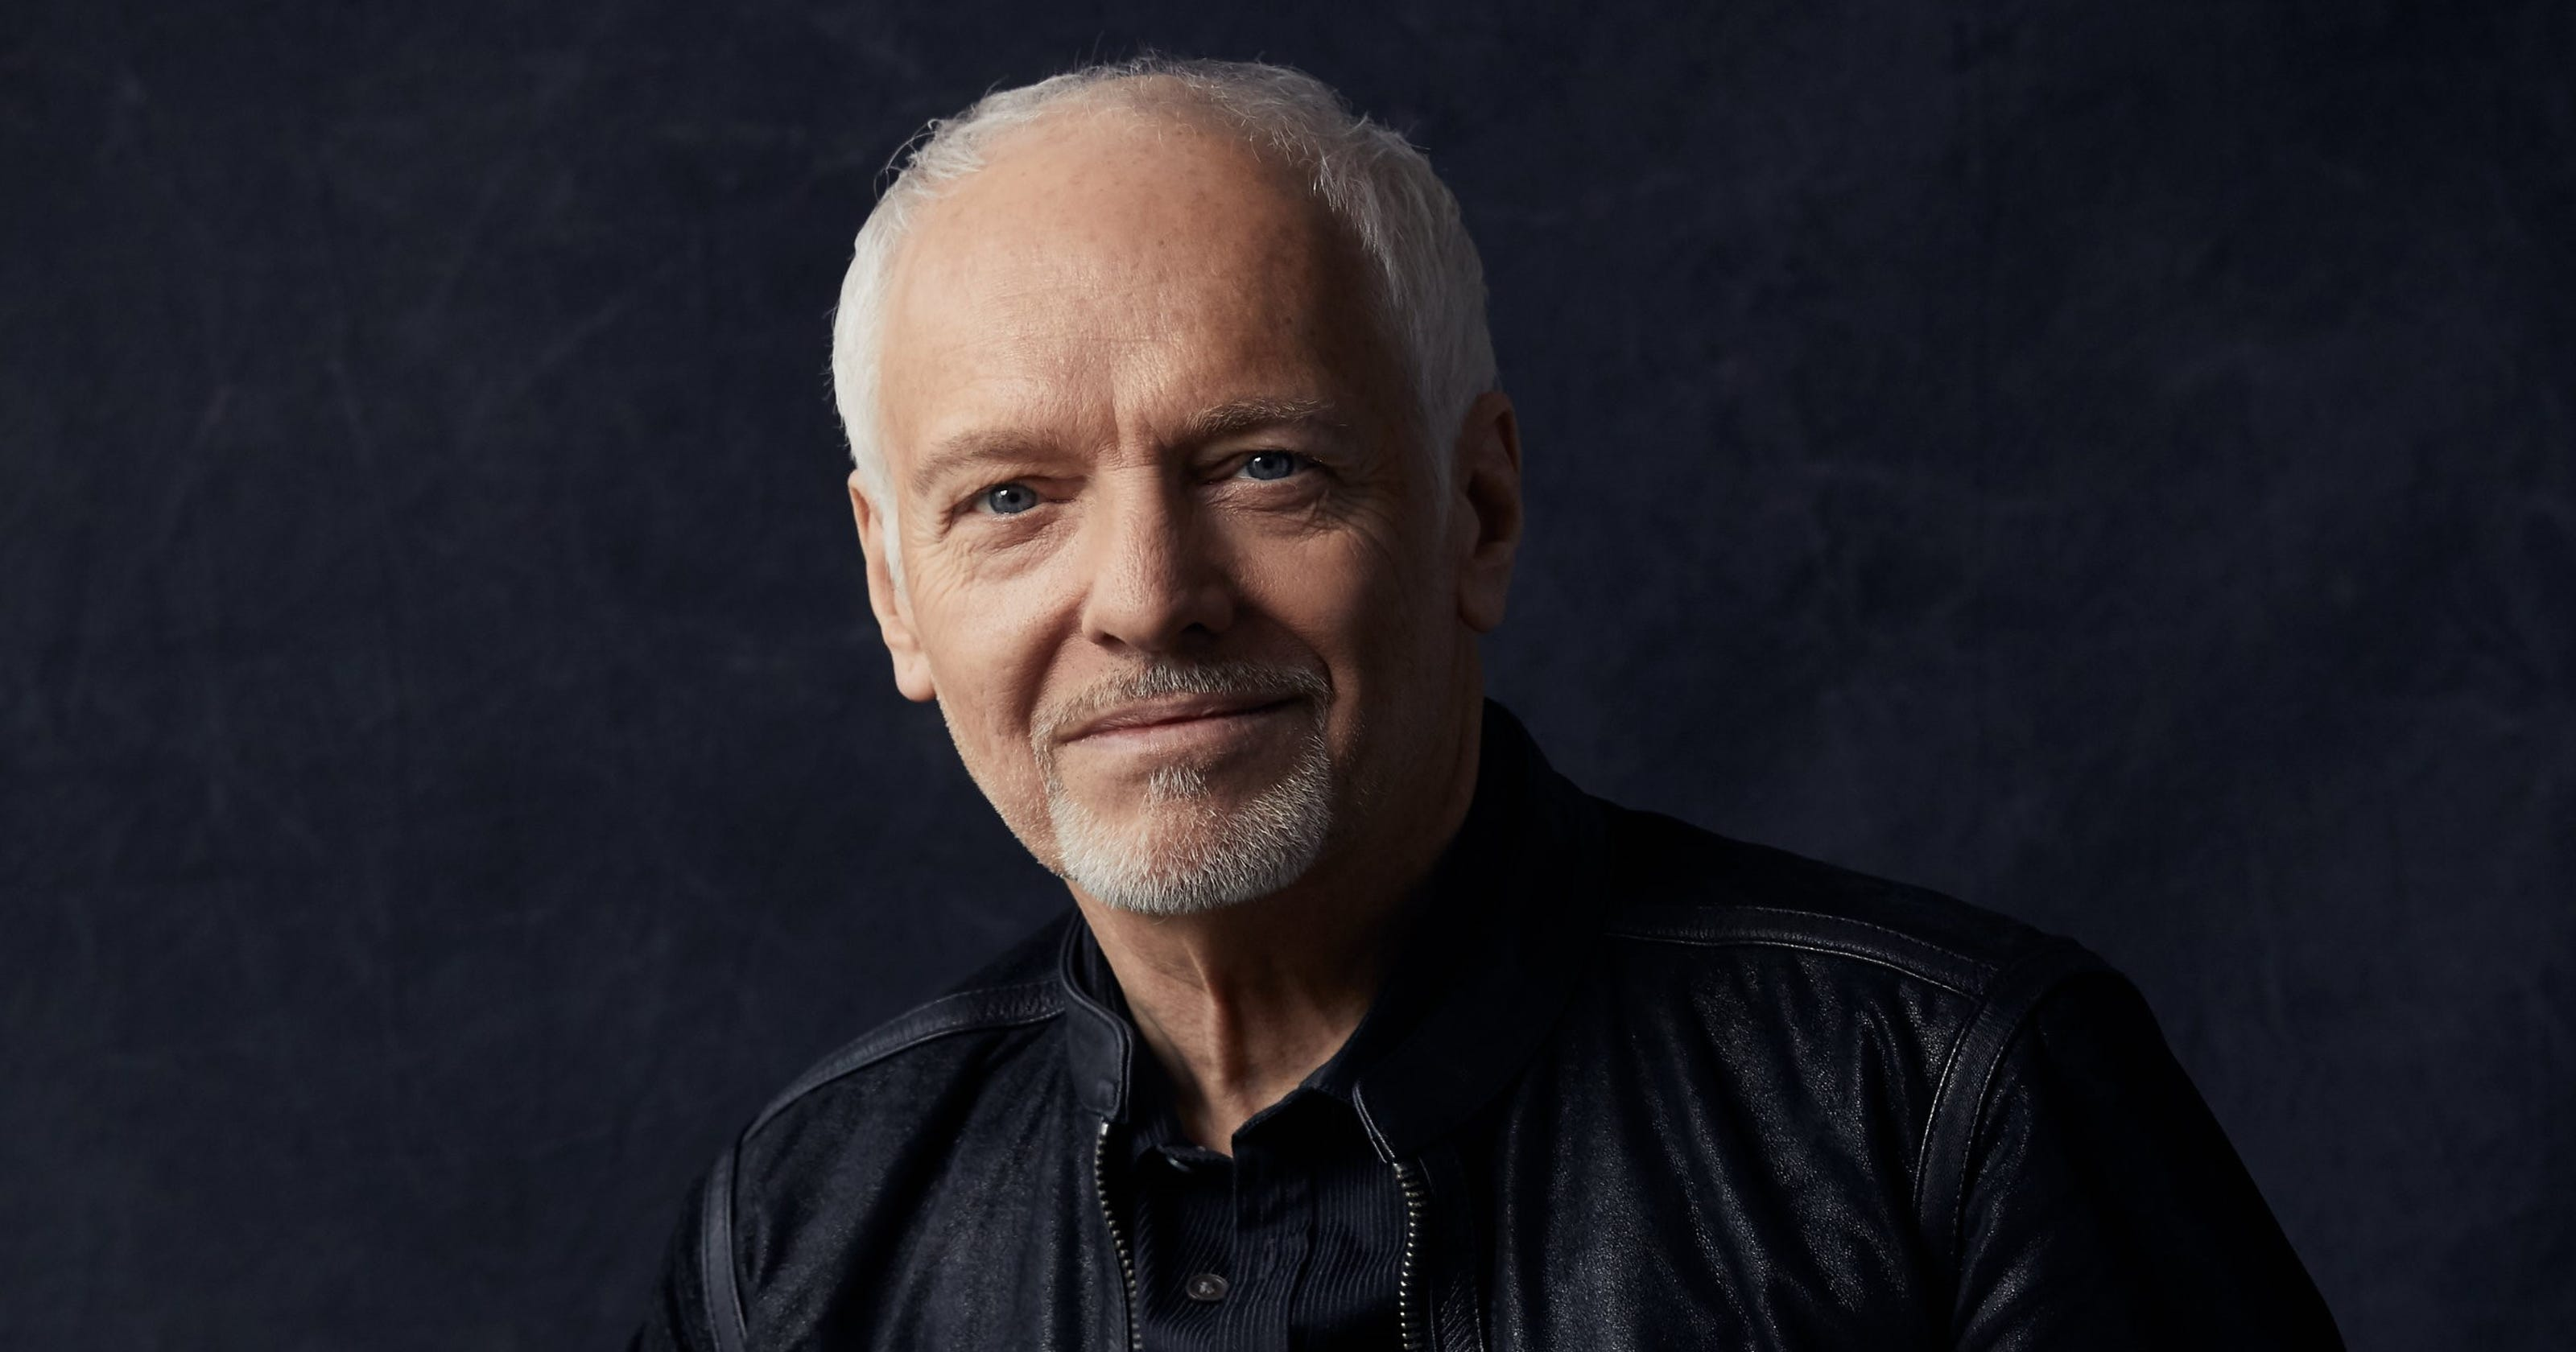 Peter Frampton 'honored' to play Nashville's free New Year's